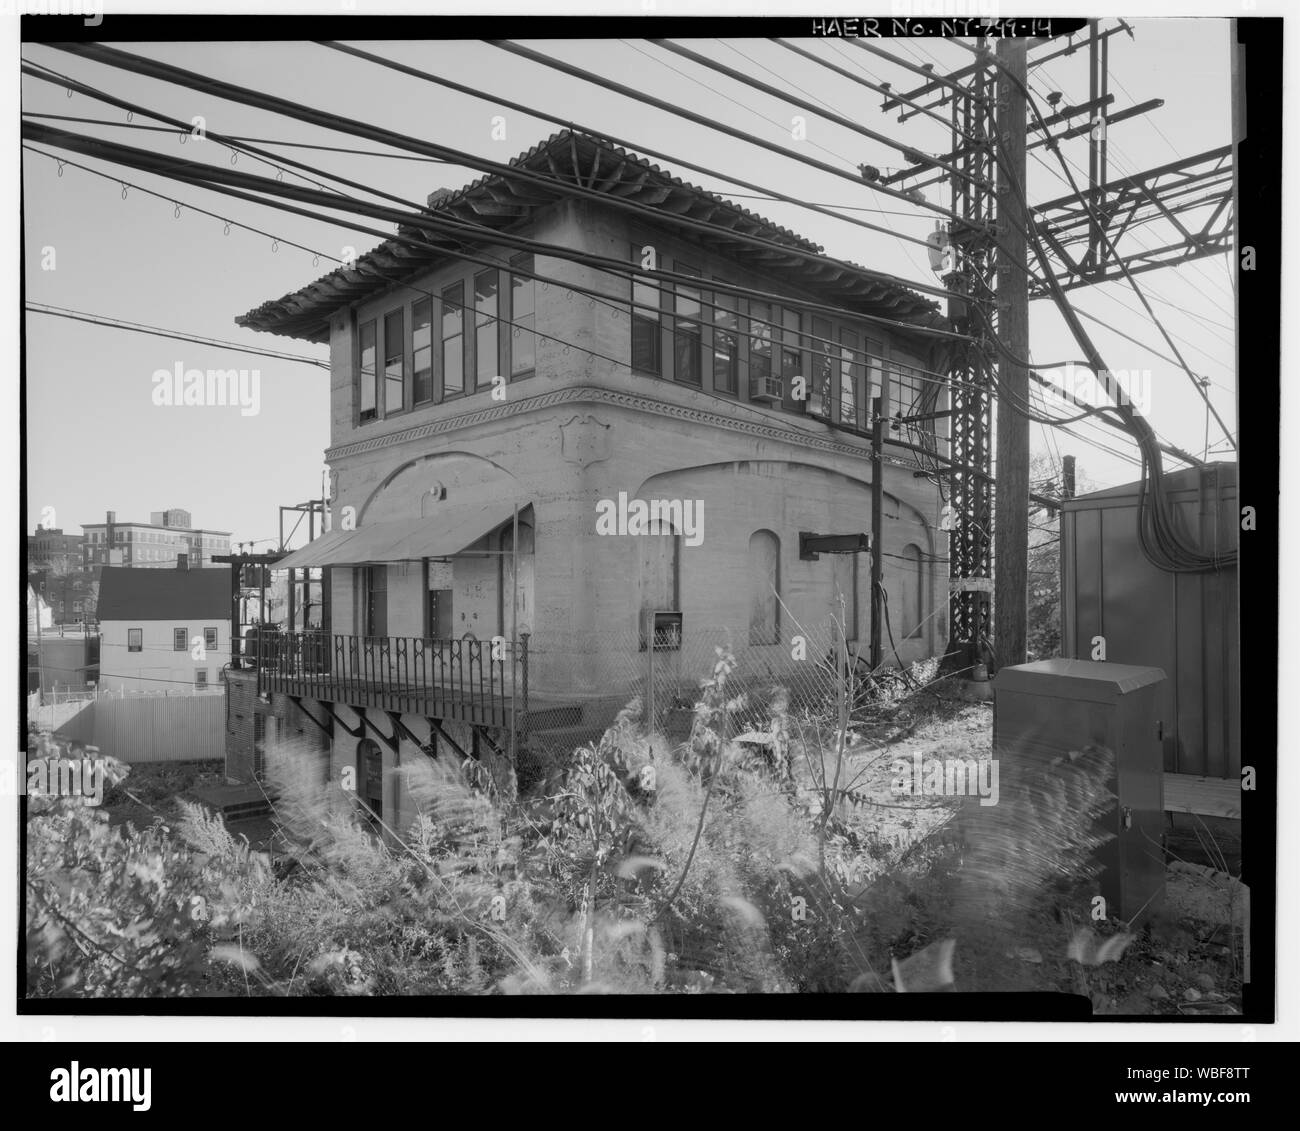 General oblique view of Shell Interlocking Tower, north and west facades, showing over head catenary tower and bridge at right. - New York, New Haven, and Hartford Railroad, Shell Interlocking Tower, New Haven Milepost 16, approximately 100 feel east of New Rochelle Junction, New Rochelle, Westchester County, NY Stock Photo